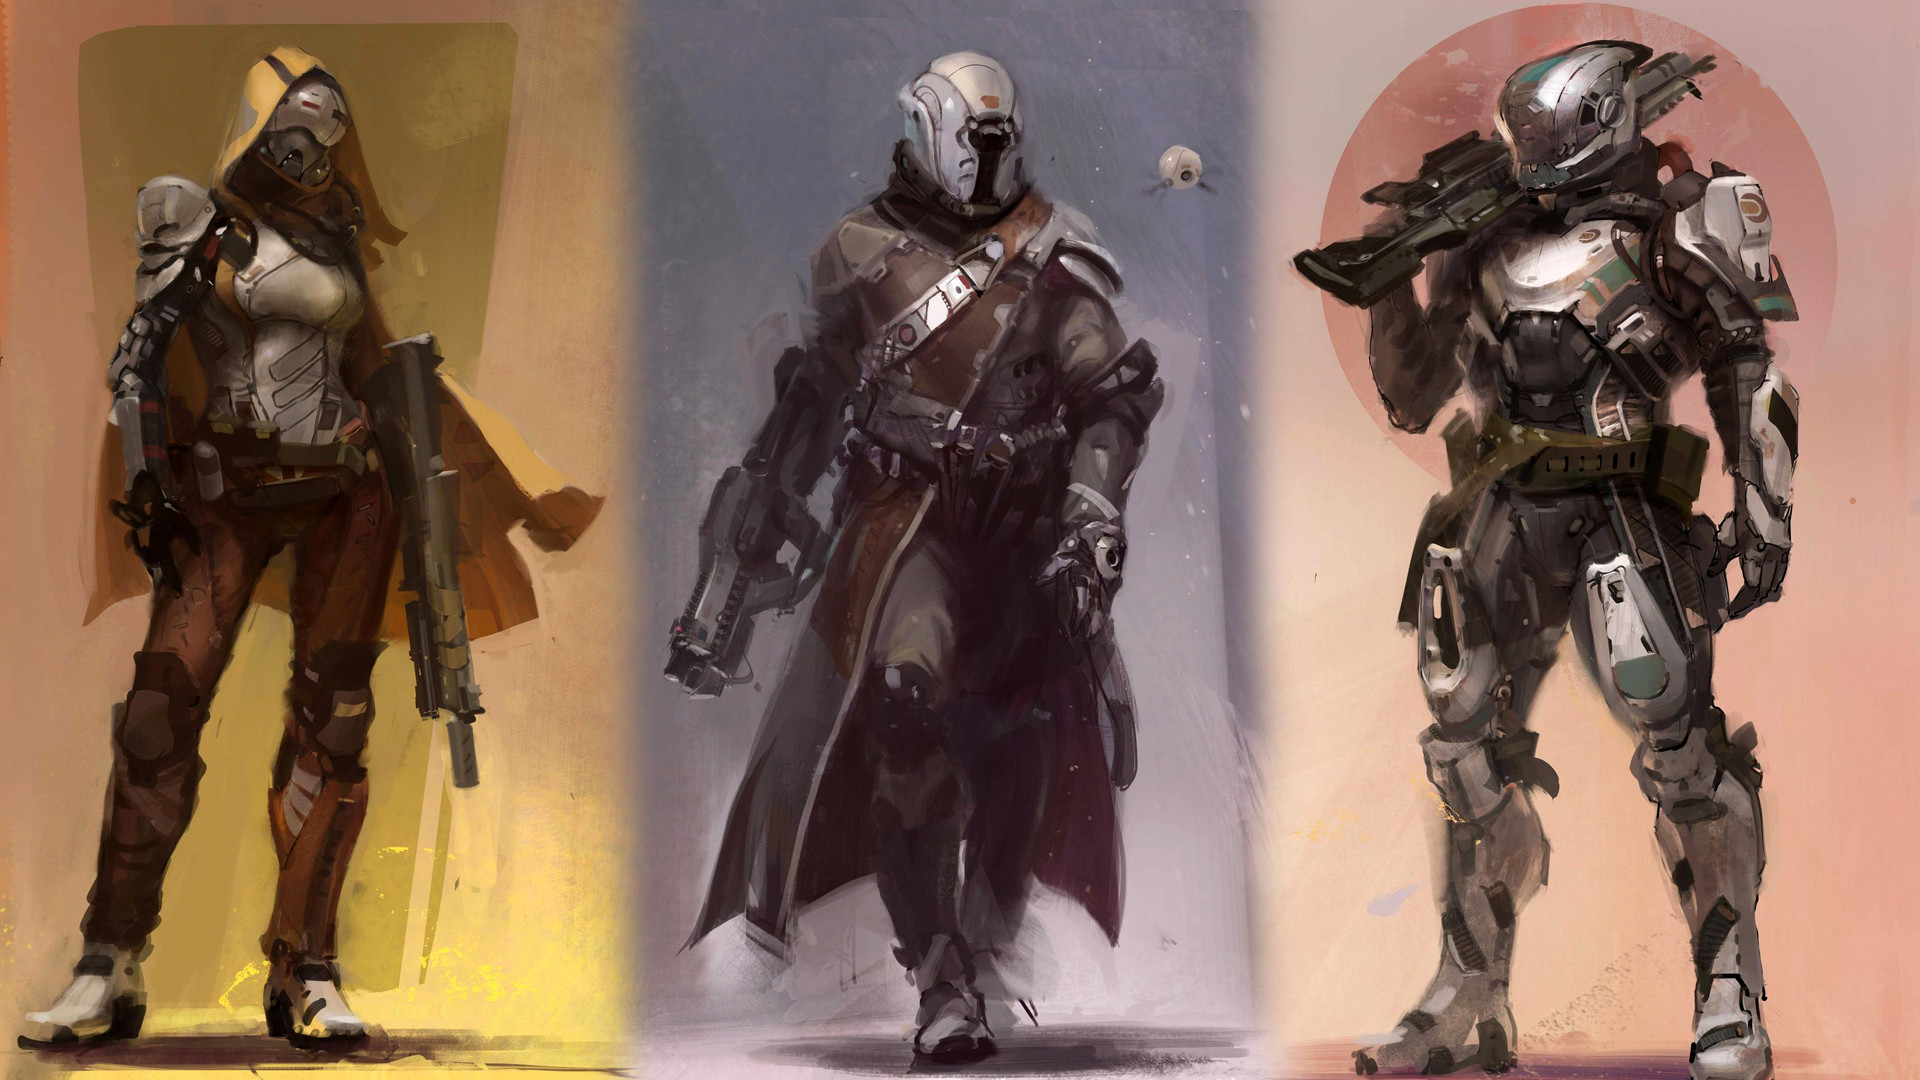 1920x1080 Guardian classes Hunter, Titan and Warlock Destiny game sci fi. HD .